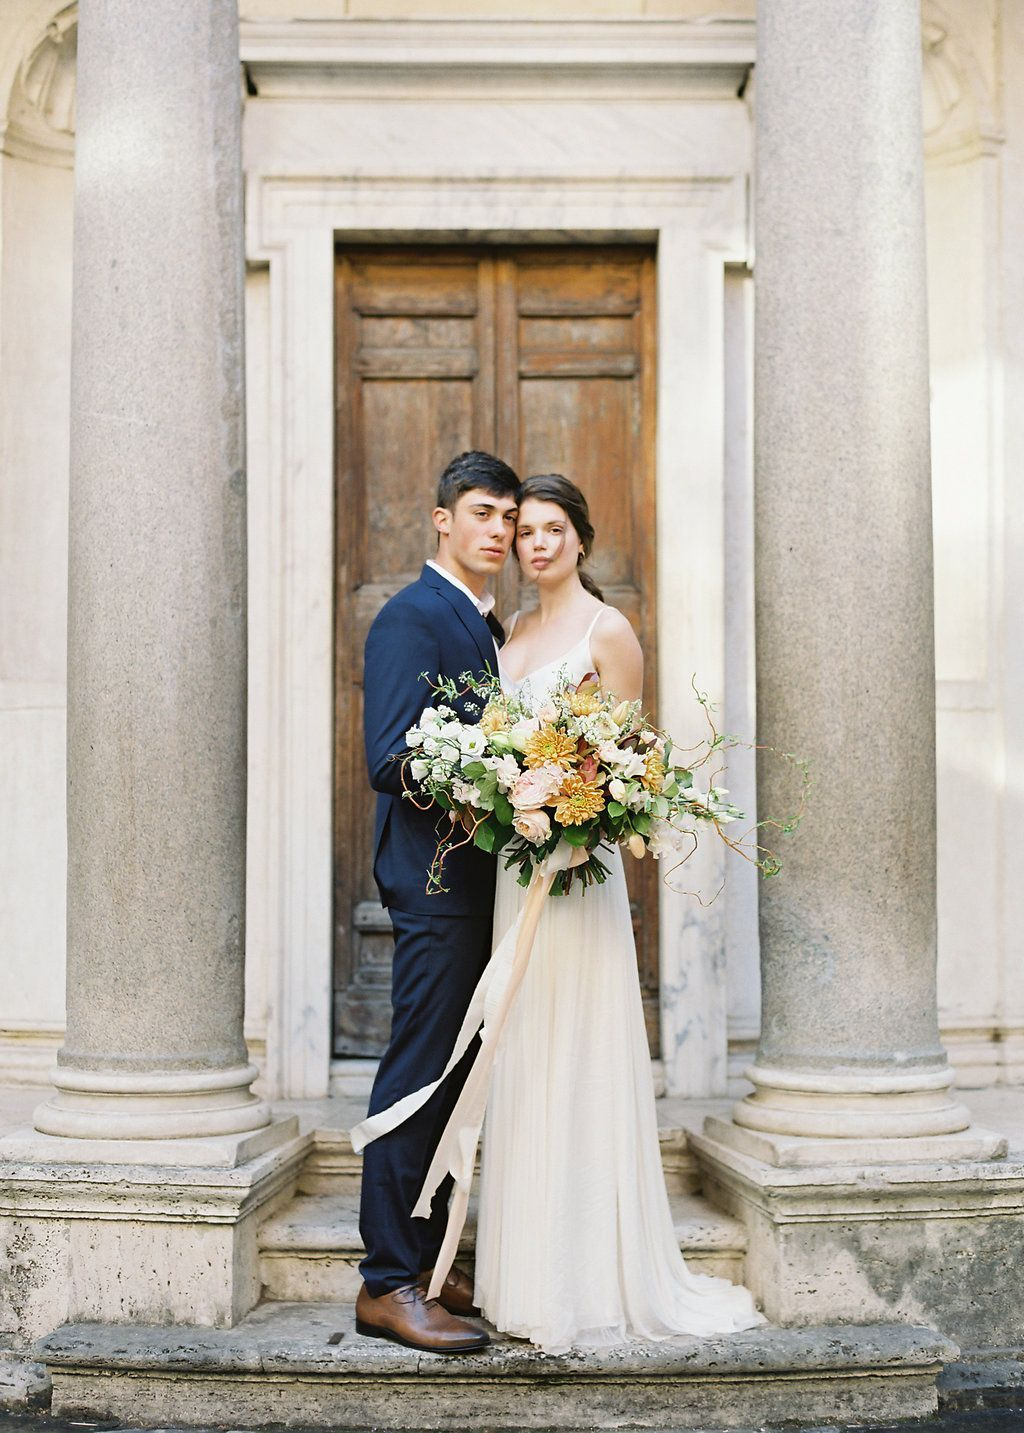 Vicki_Grafton_Photography_Rome_Italy_Wedding_Photographer_2017-103